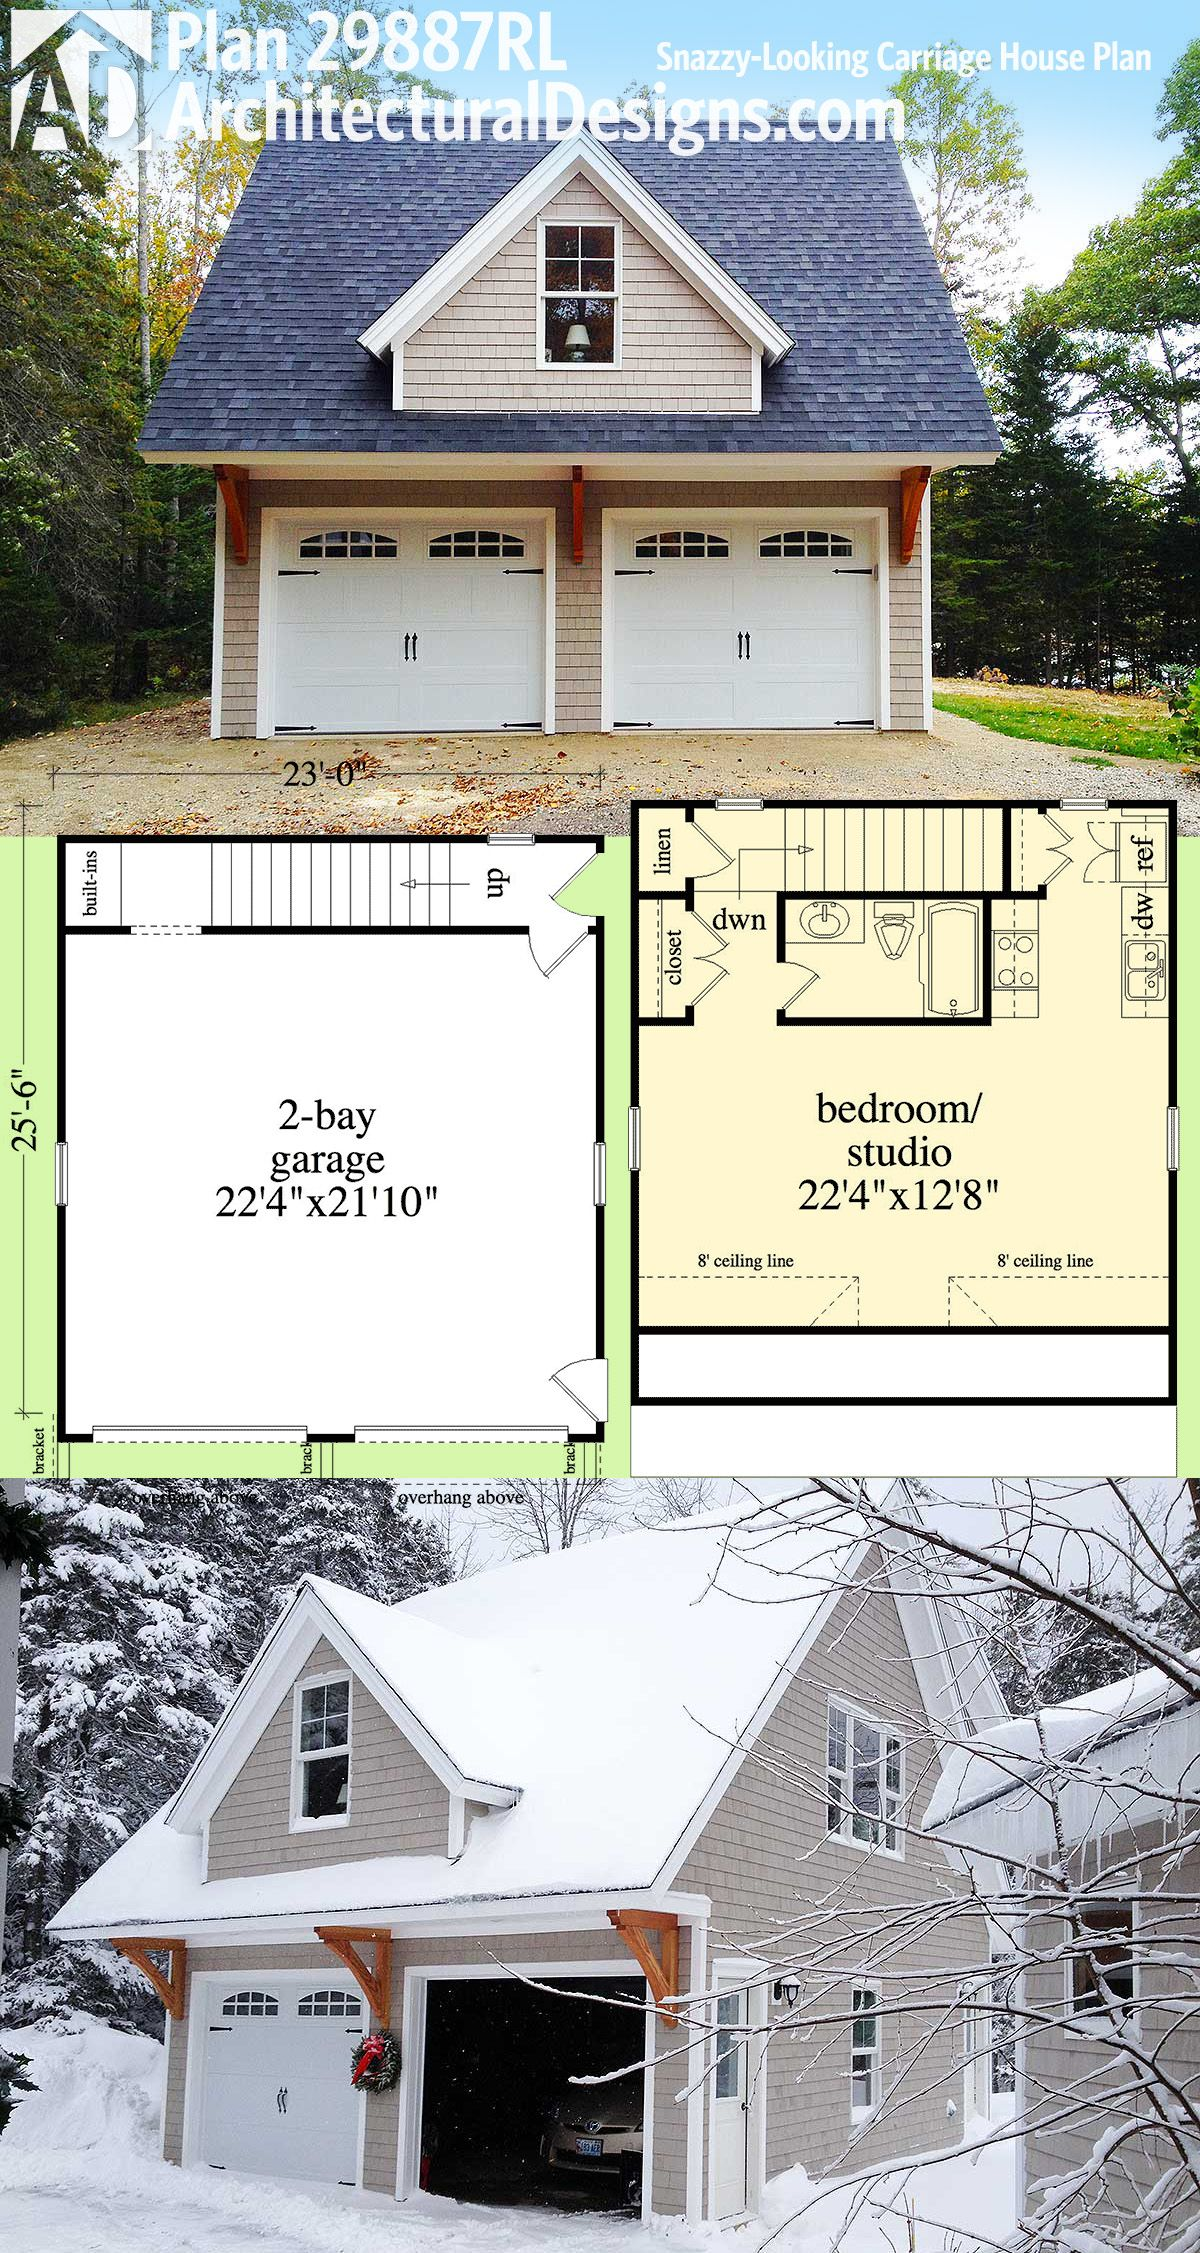 Plan 29887rl snazzy looking carriage house plan for Small house over garage plans